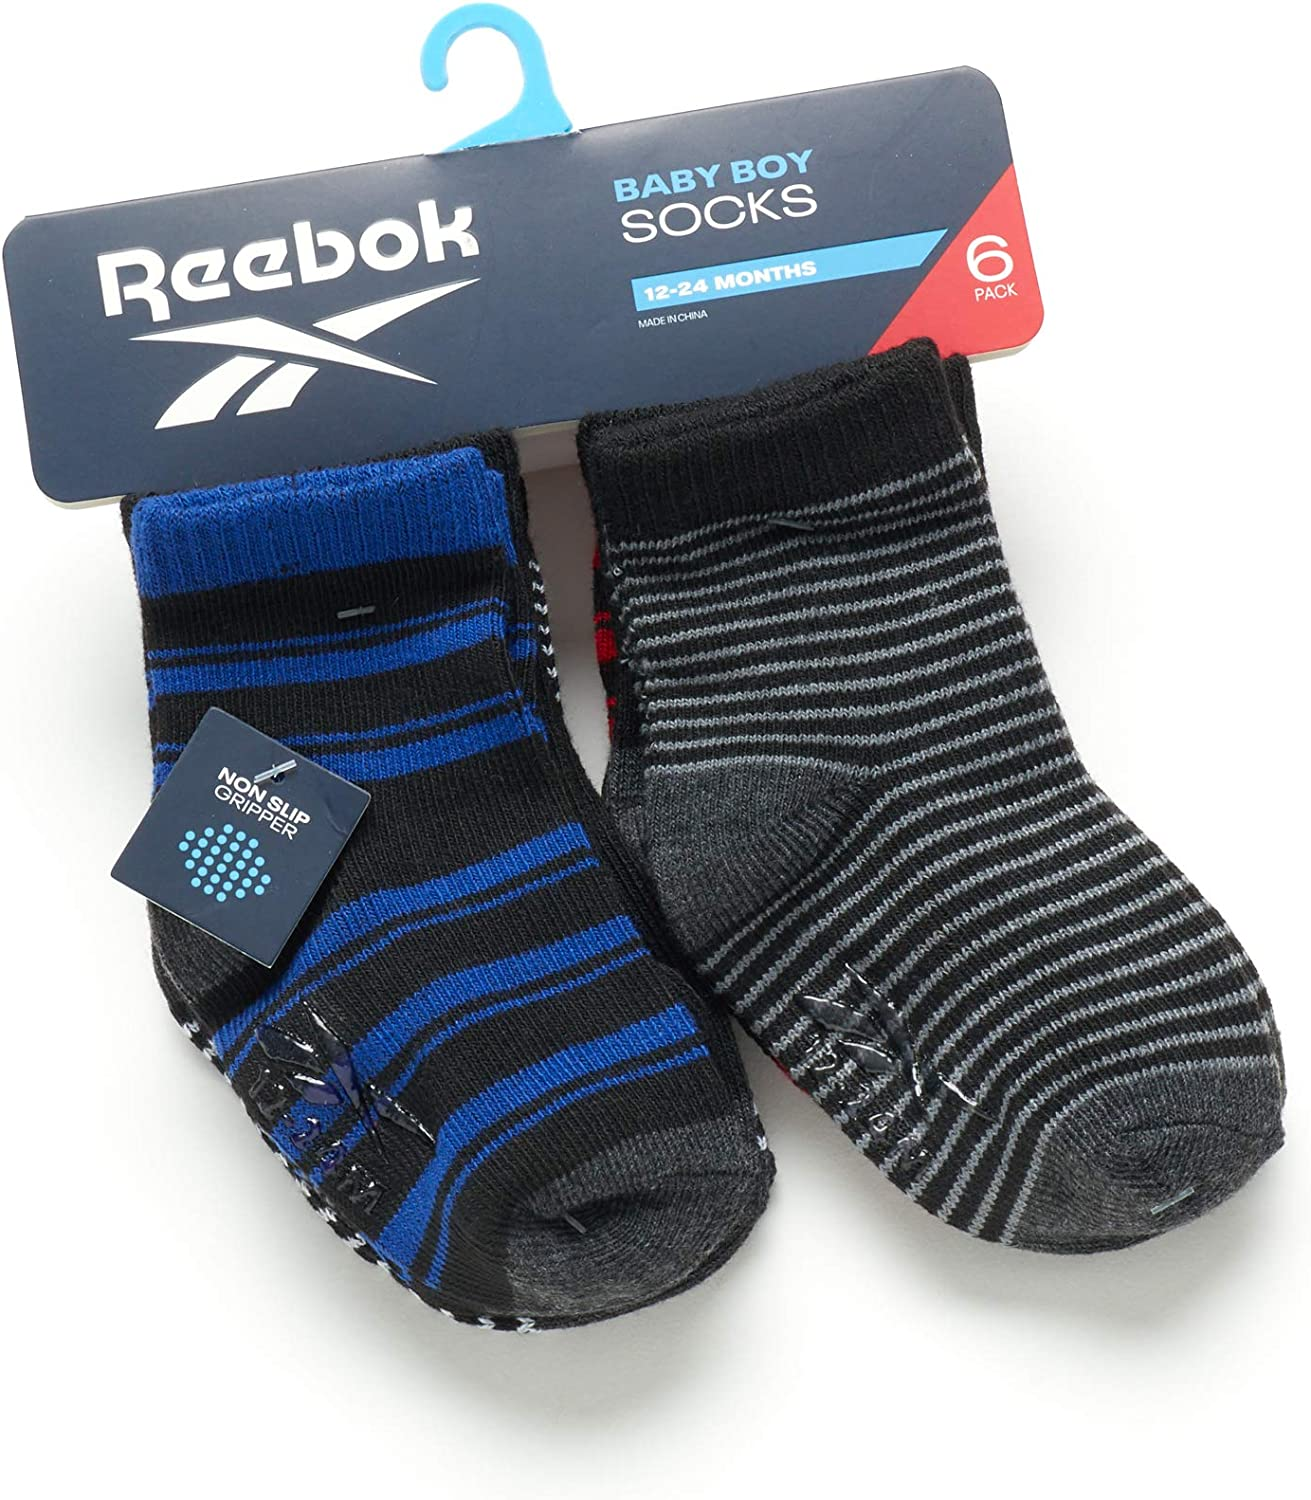 Reebok Baby Boys 6 Pack Quarter Cut Socks with Nonslip Traction Grip (Infant/Toddler)